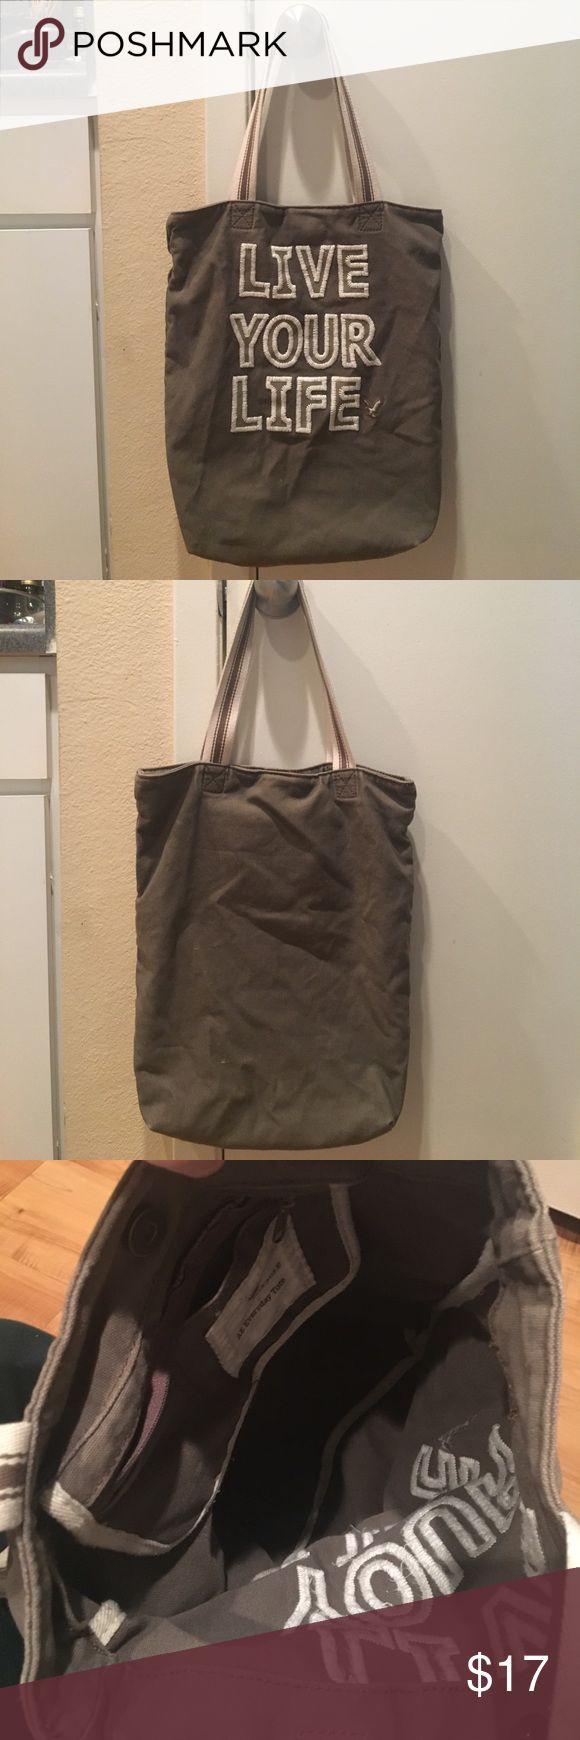 """American Eagle Everyday Tote Great for throwing books in and heading to class. Grey/Army Greenish color. Magnet closure at top. Internal pocket with zipper. A couple slight use marks (see pic) on front and back. Still in great shape. About 14"""" wide x about 16"""" long. Canvas. Sewn detail around lettering. American Eagle Outfitters Bags Totes"""